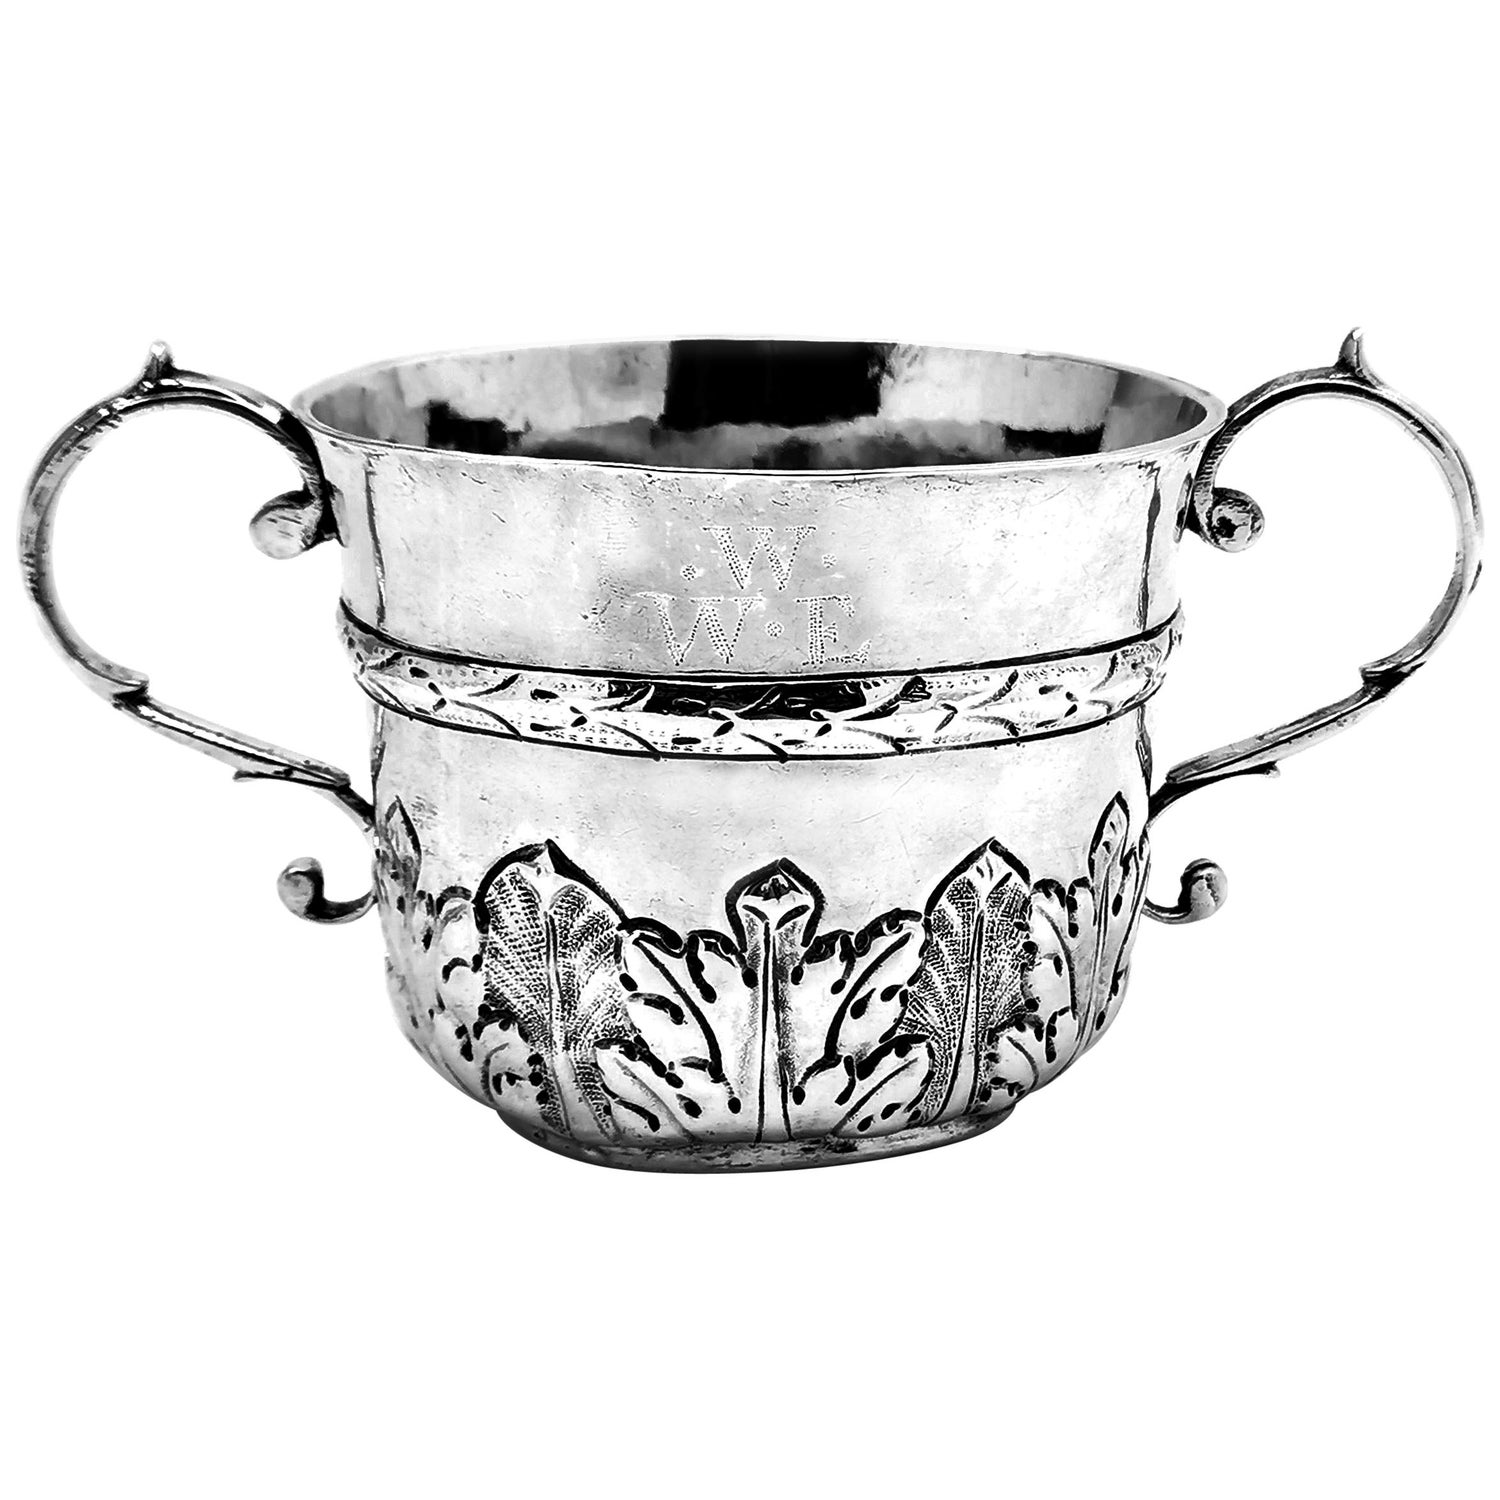 Antique James II Sterling Silver Porringer / Two Handled Cup 1687 17th Century